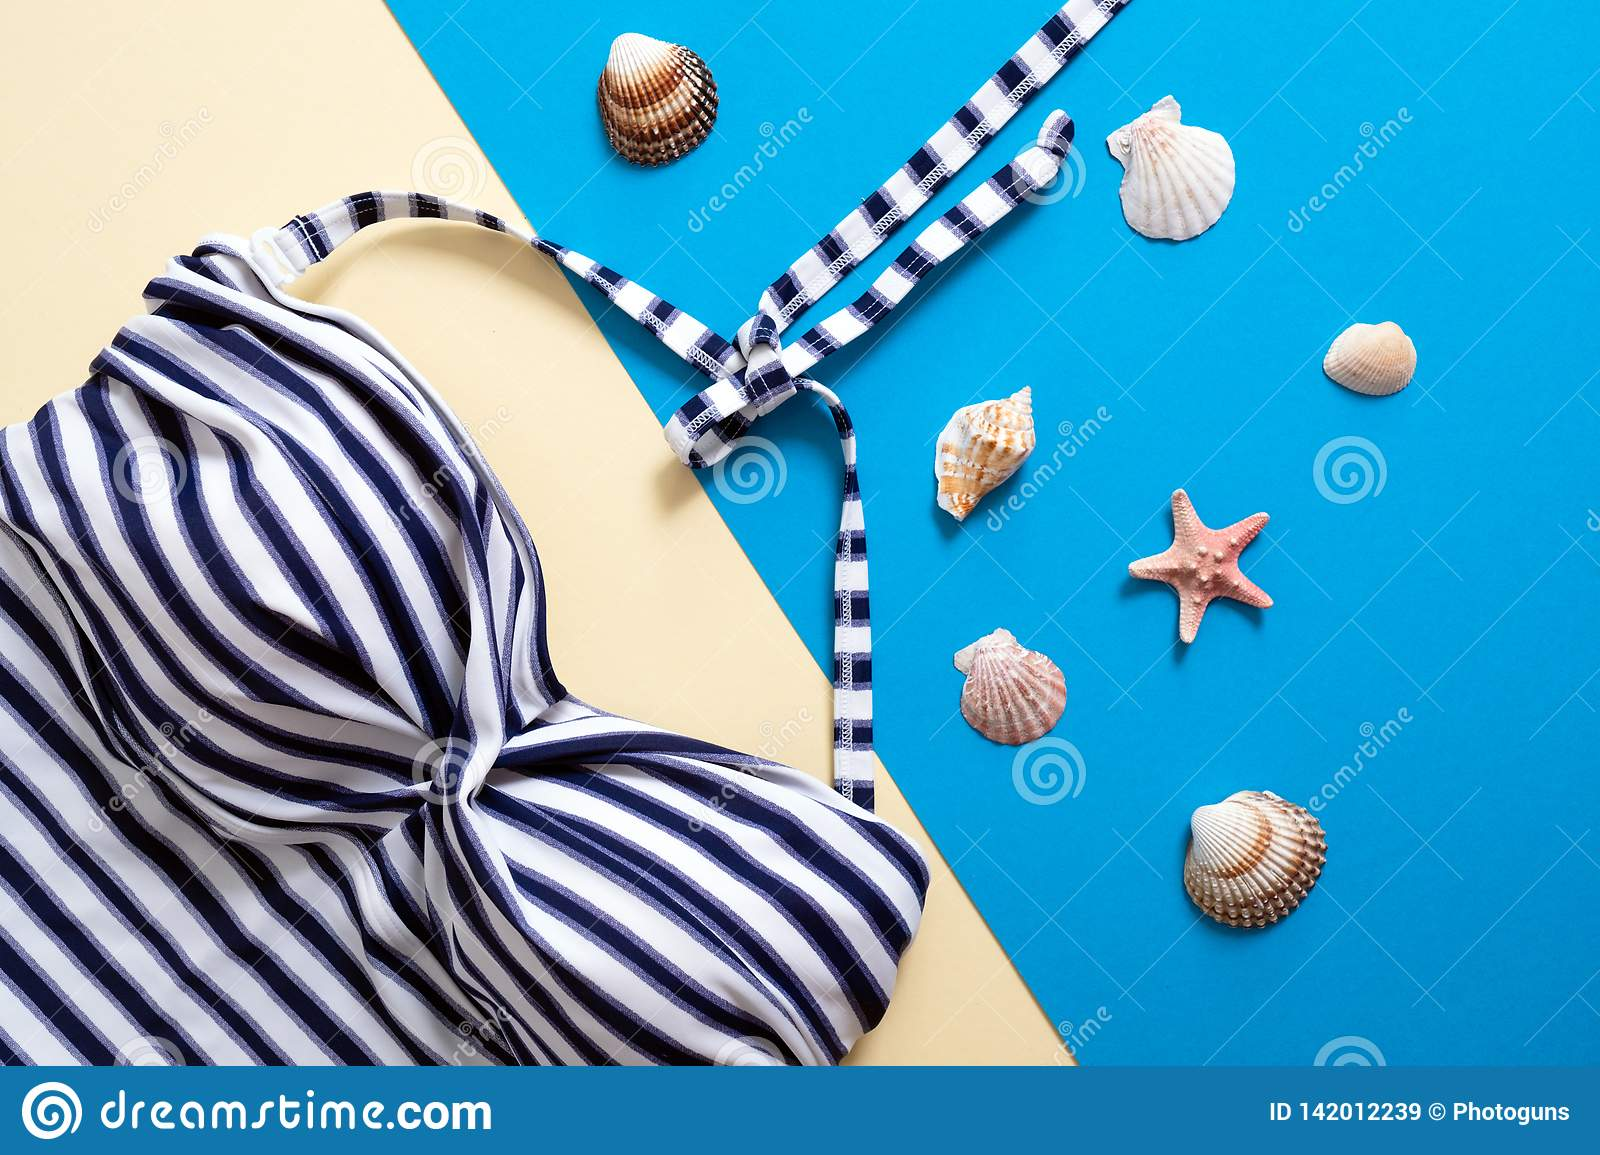 Striped women`s swimsuit and sea shells on blue and yellow background. Flat lay composition, concept of summer holidays, vacation